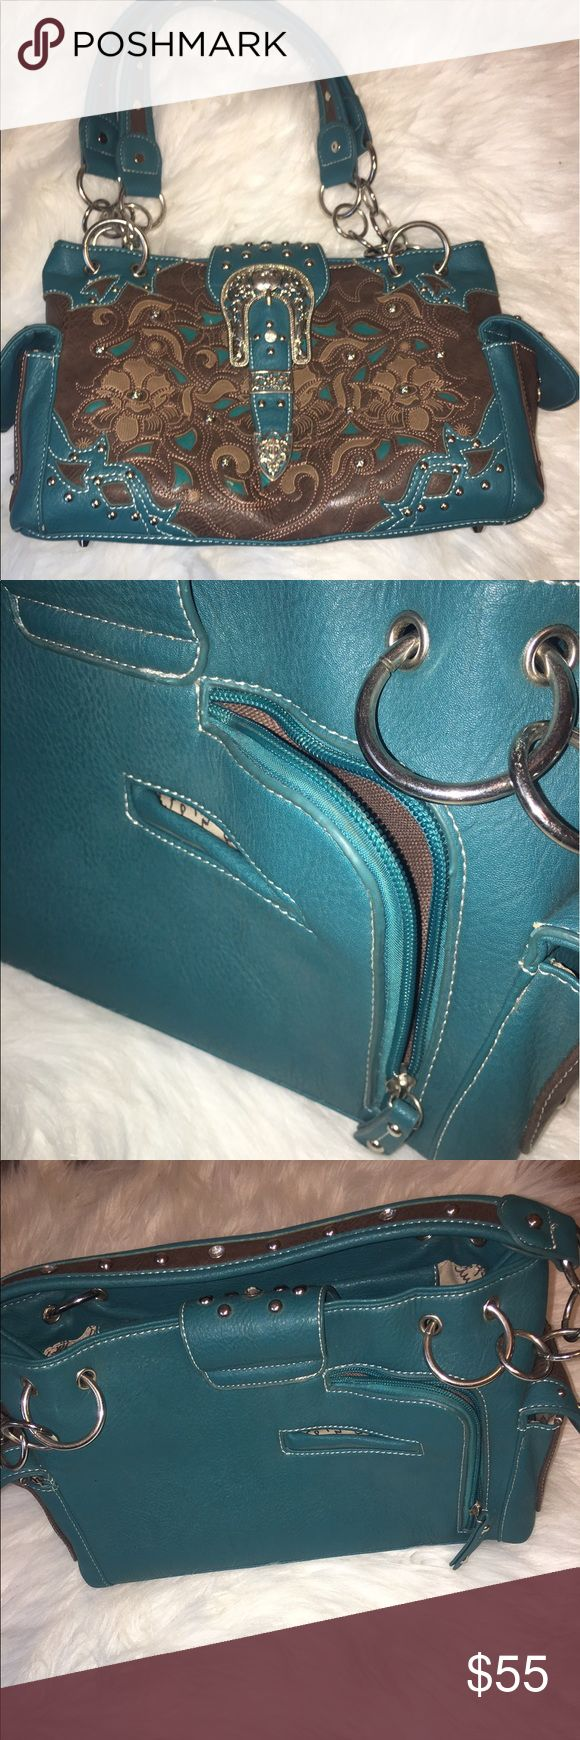 Texas style teal purse In good condition, very well made leather! concealed weapon pocket. Local boutique. Paid $110 Bags Shoulder Bags